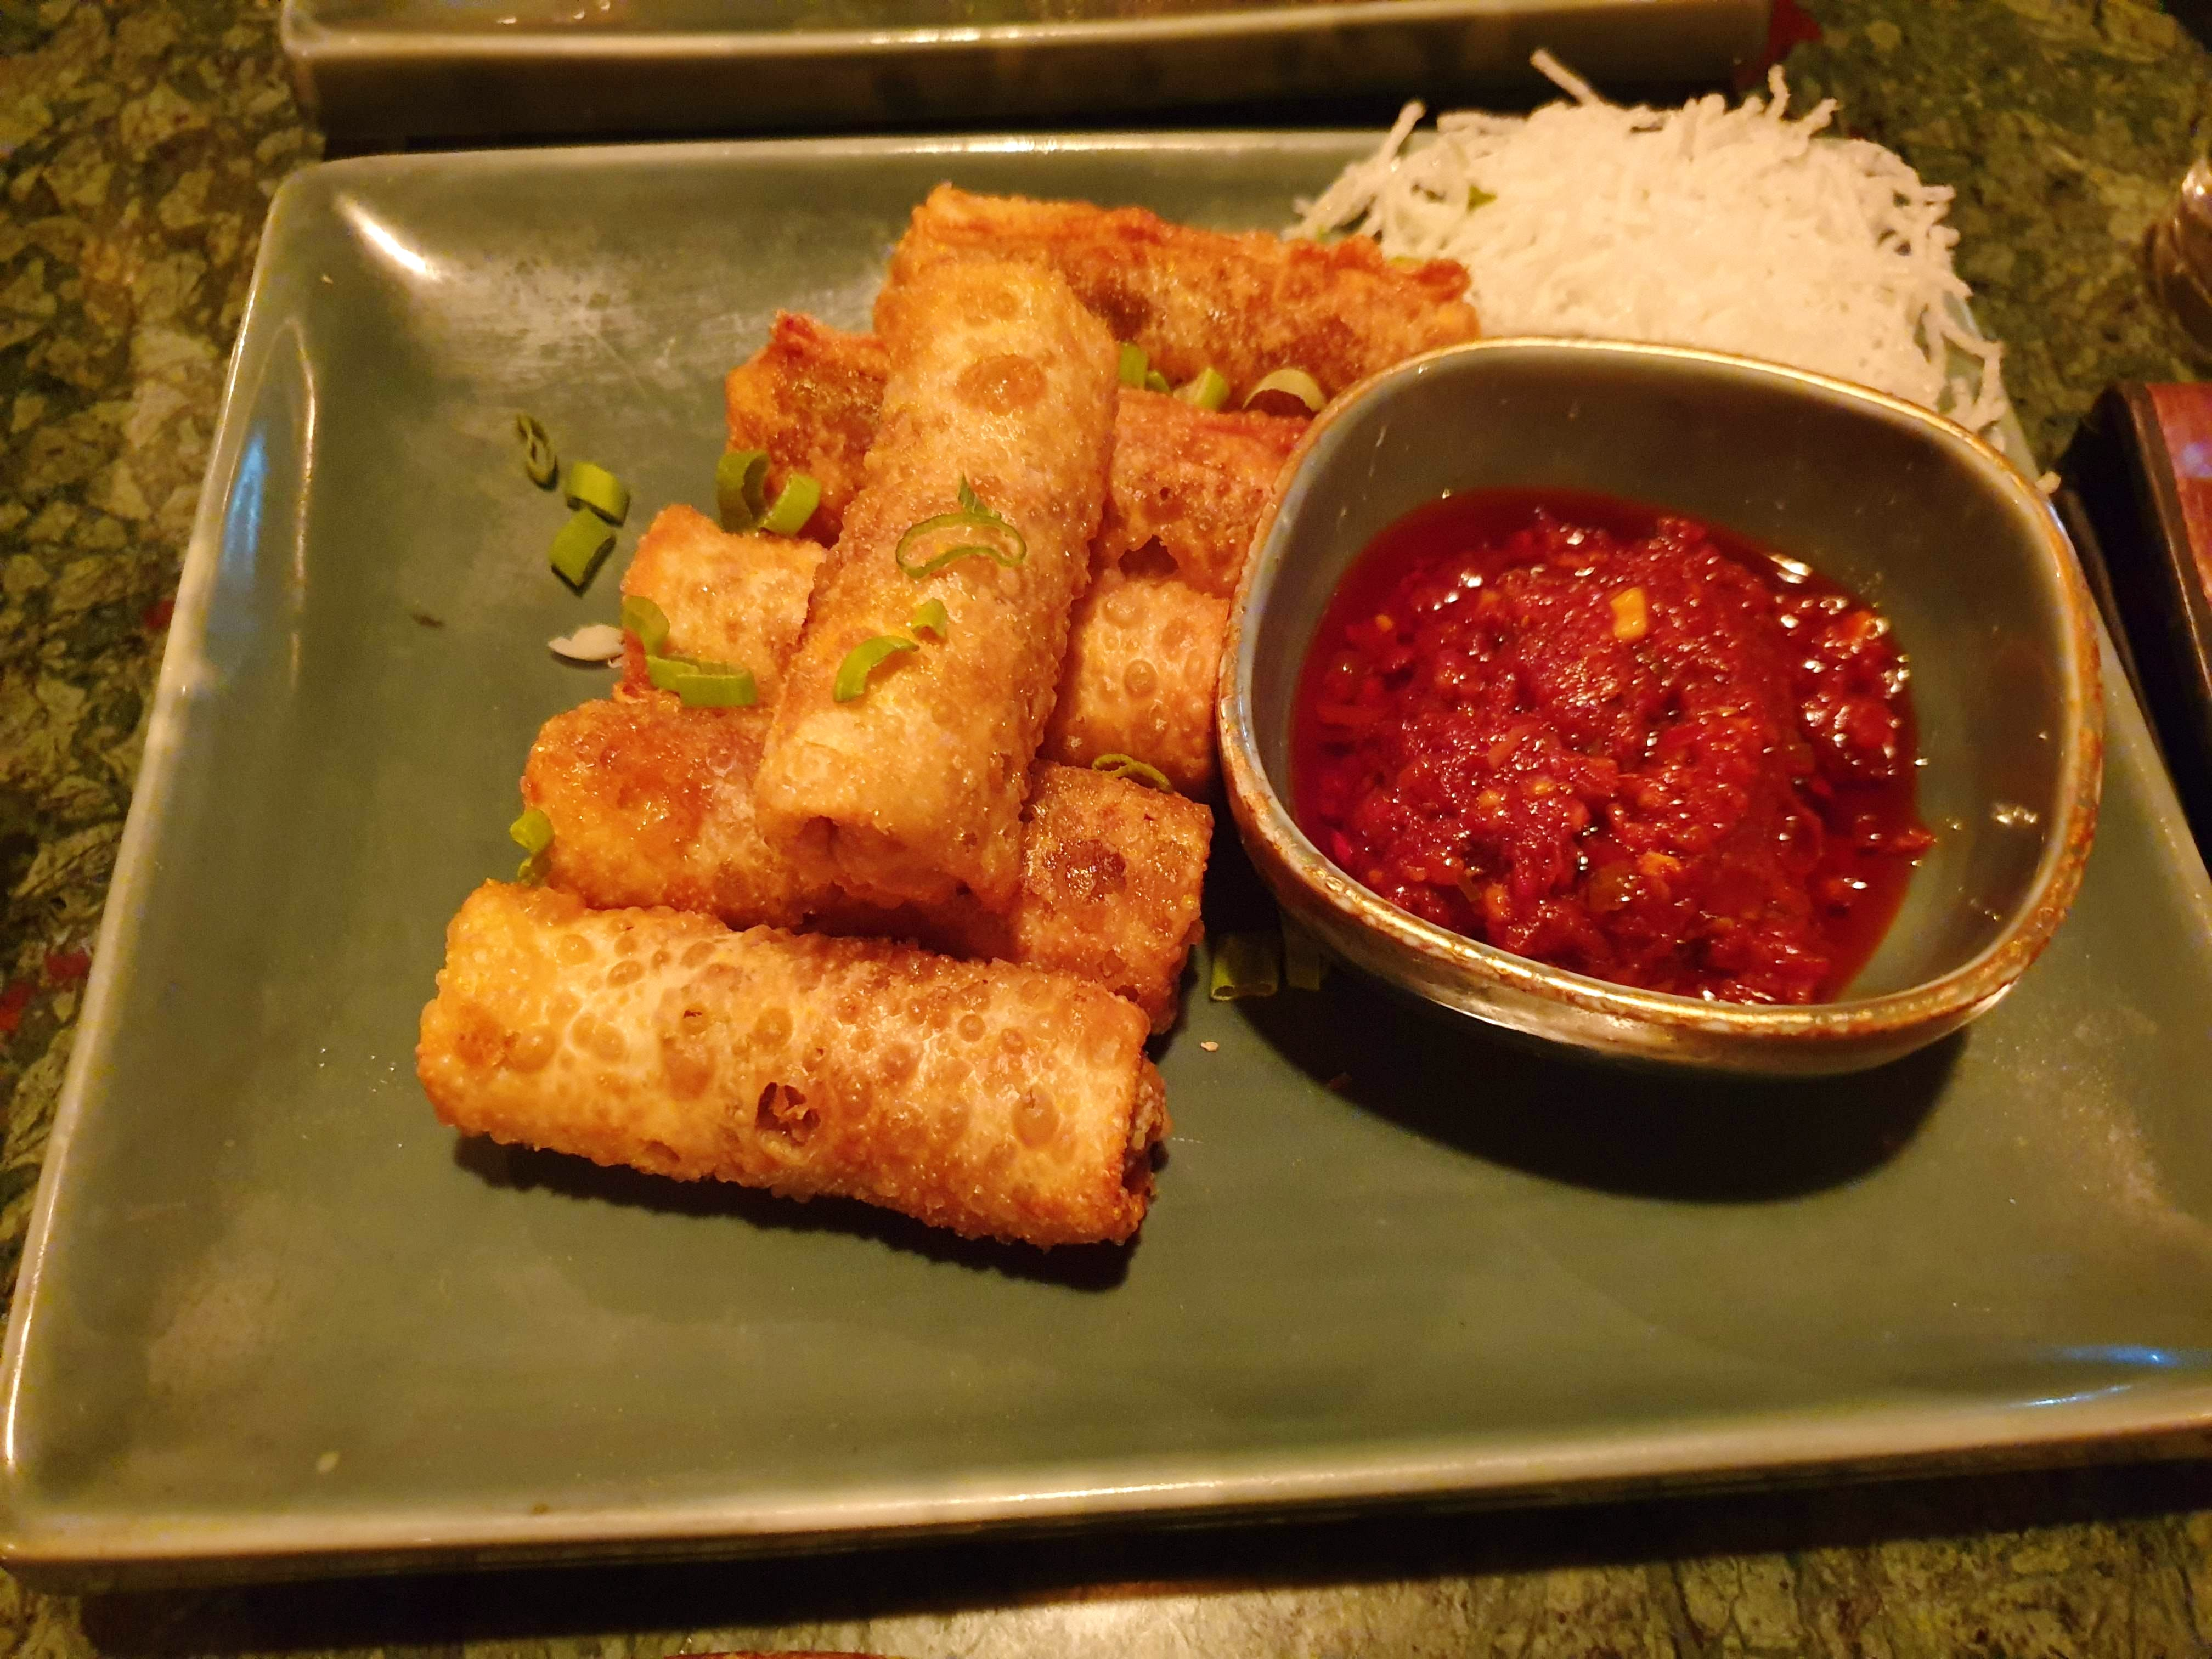 Dish,Food,Cuisine,Ingredient,Nem rán,Spring roll,Lumpia,Fried food,appetizer,Egg roll